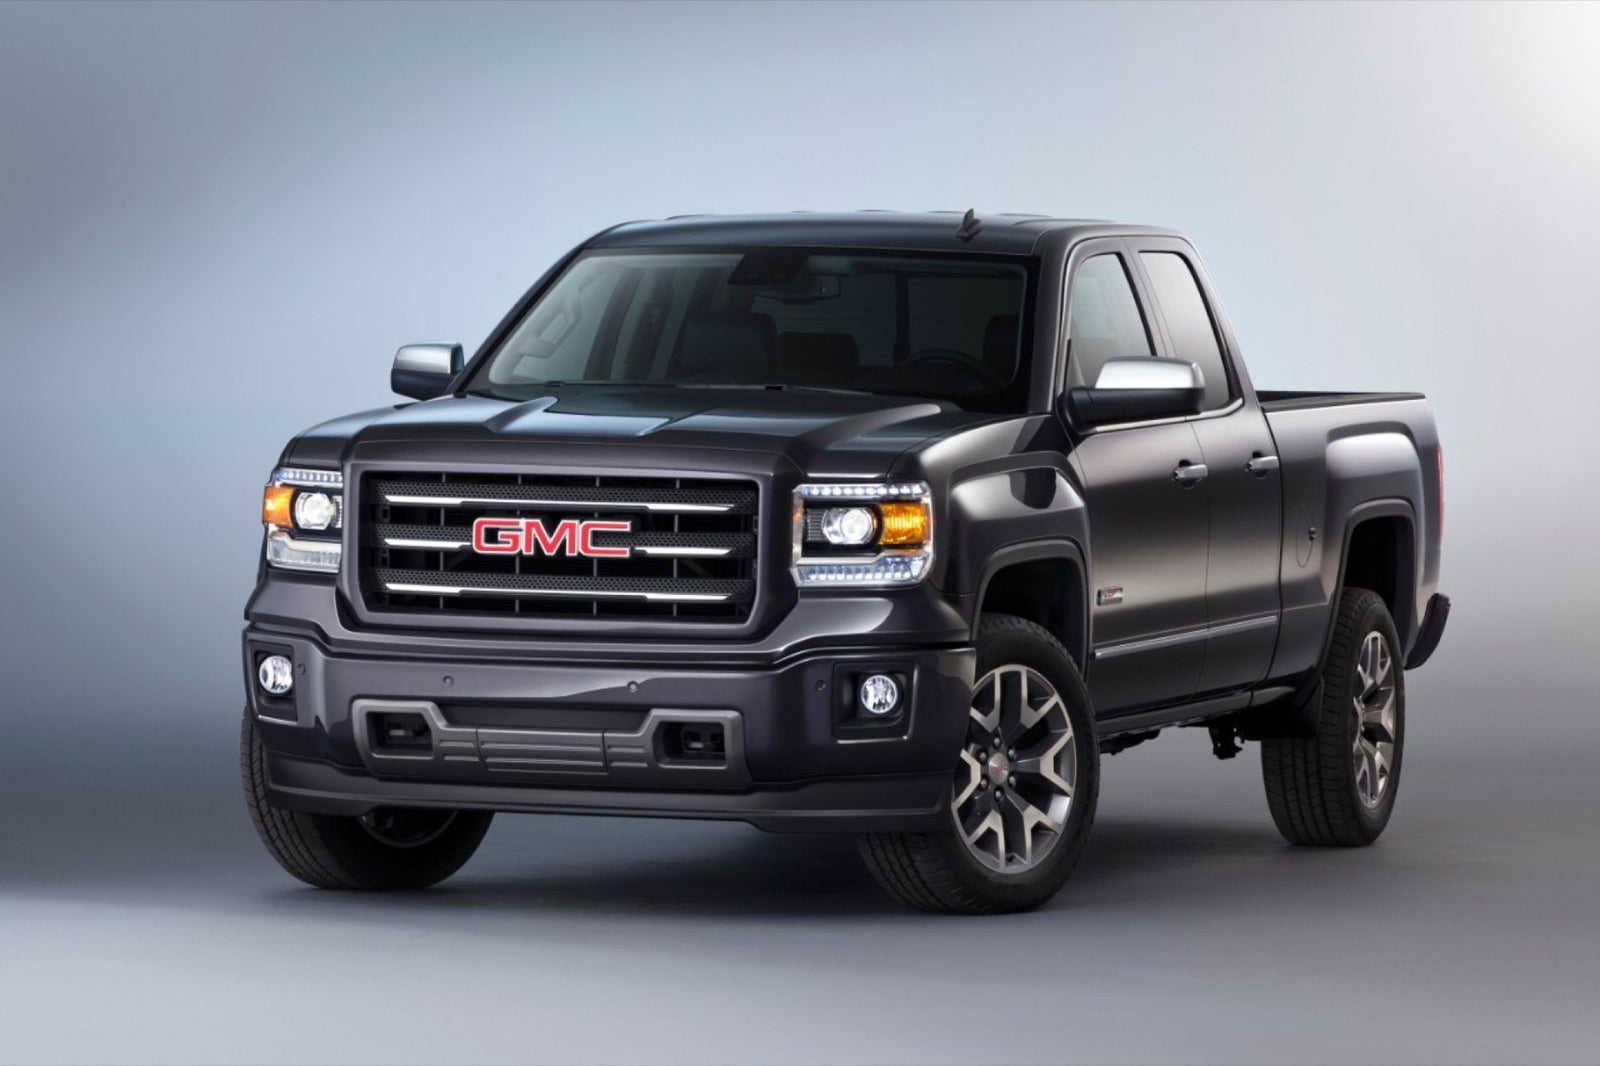 new cars hartley in for jamestown buick at gmc and truck encore sale img used dealers